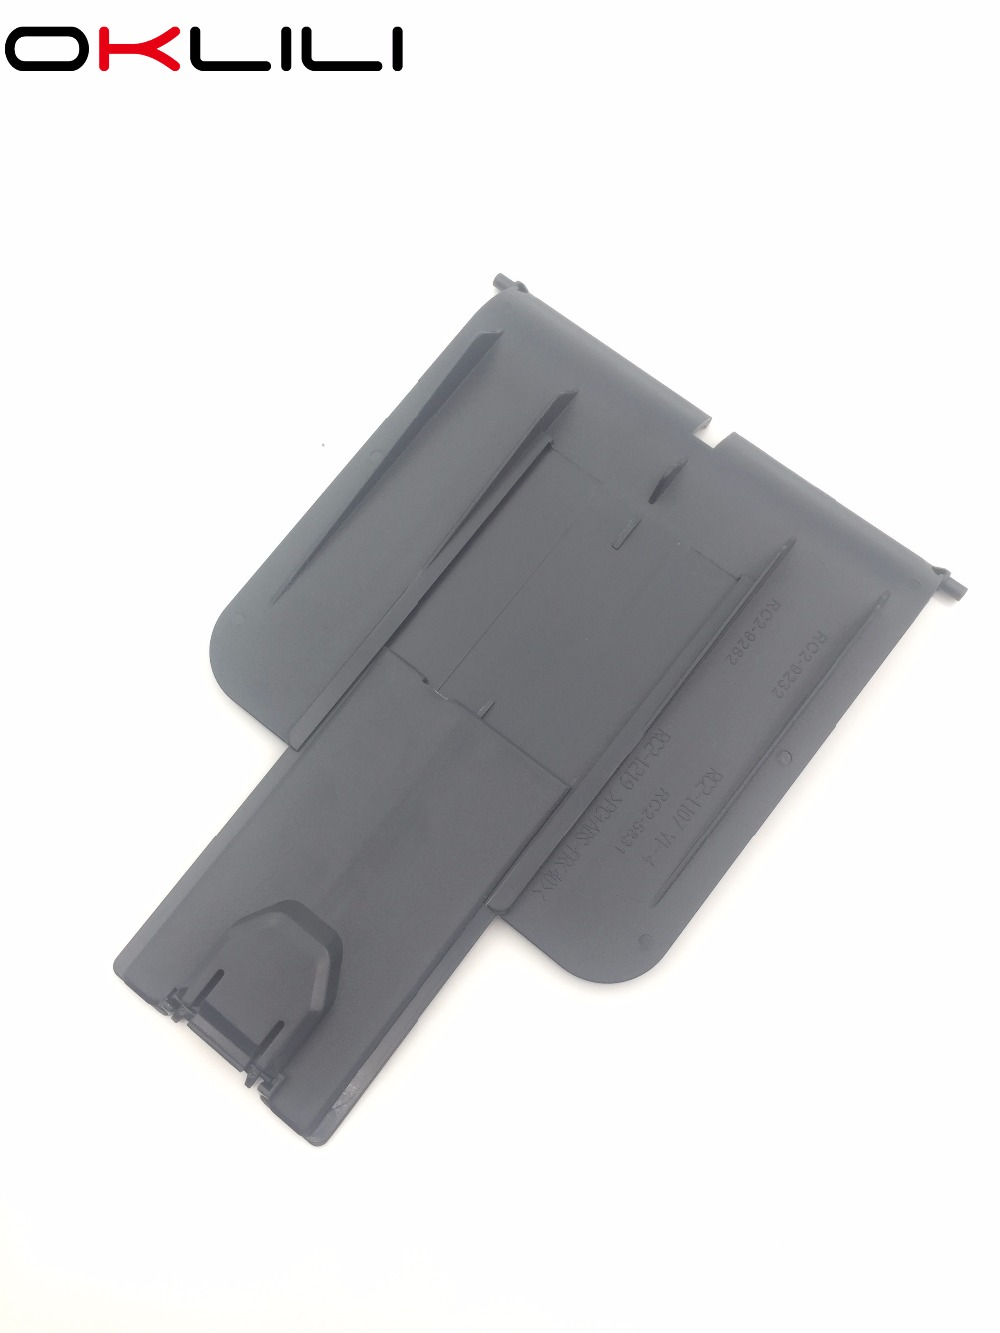 NEW RM1-6903-000 Paper Output Delivery Tray for HP P1102 P1102w P1102s M1536 P1005 P1006 P1007 P1008 P1106 P1108 P1109 P1607 afghanistan 1 1 000 000